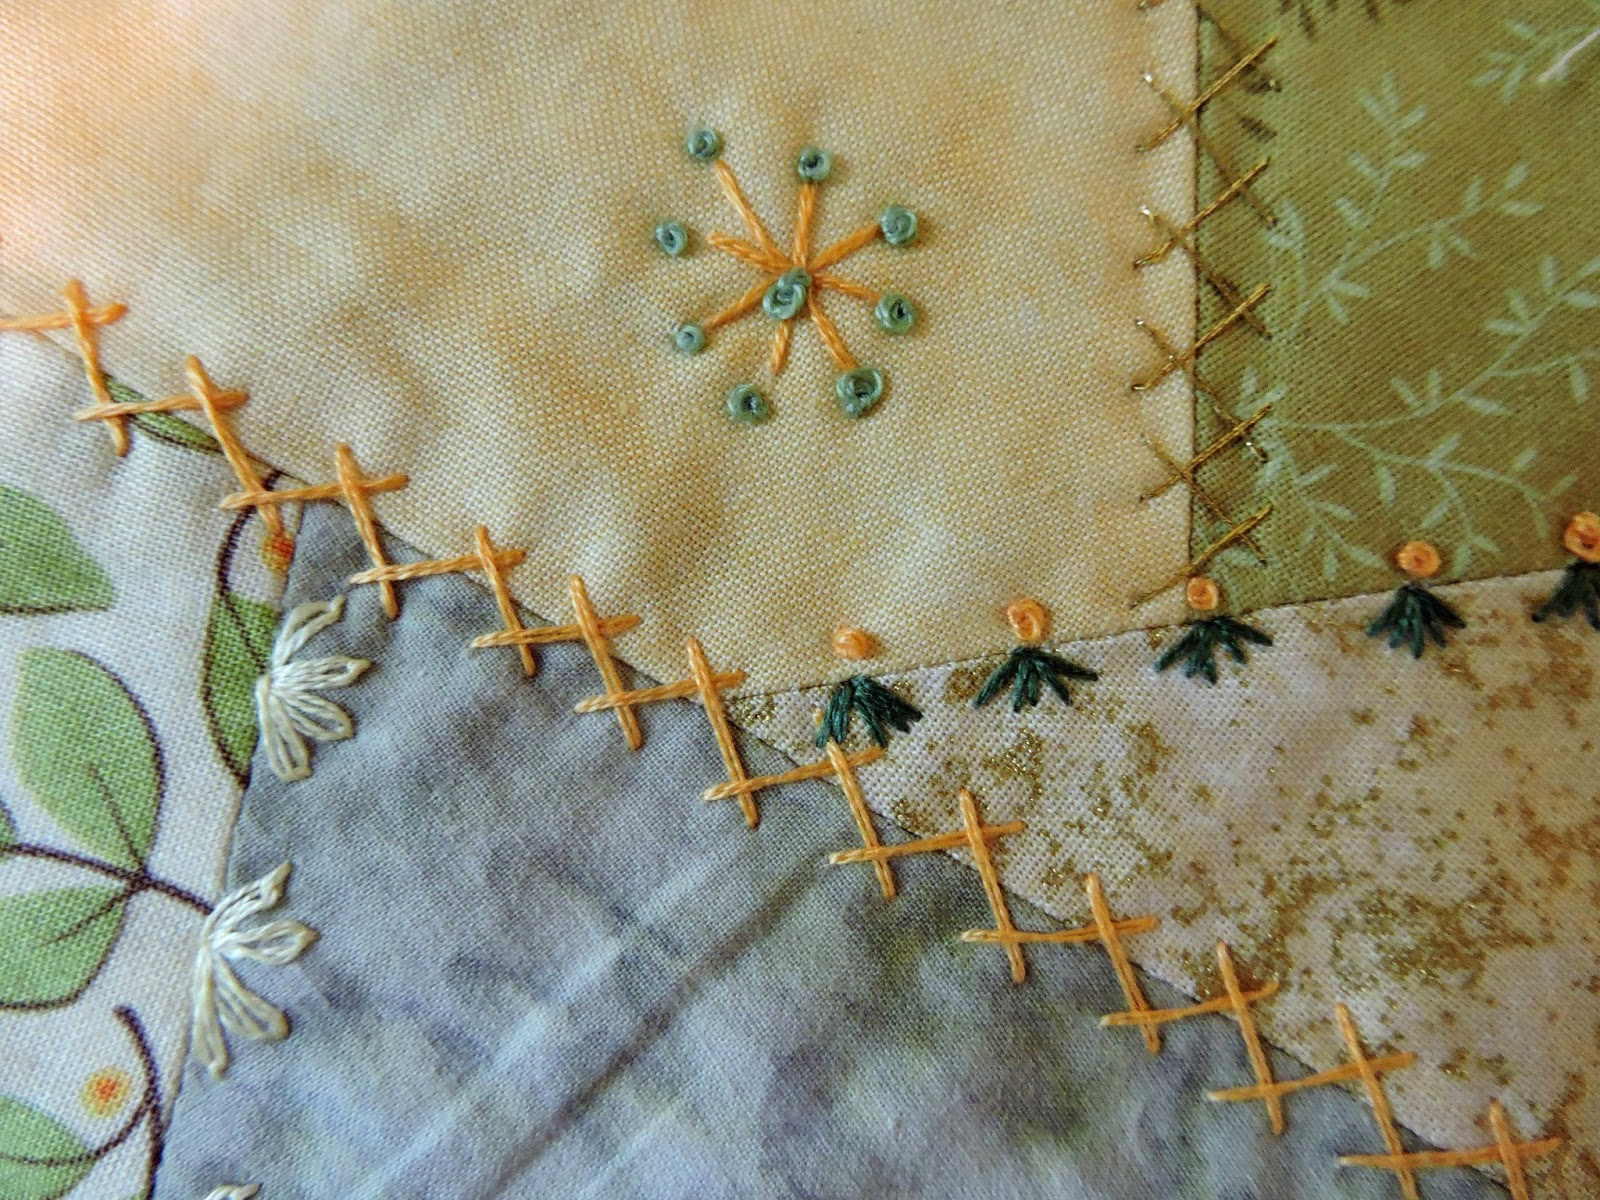 Somerset stitch basic hand embroidery stitches